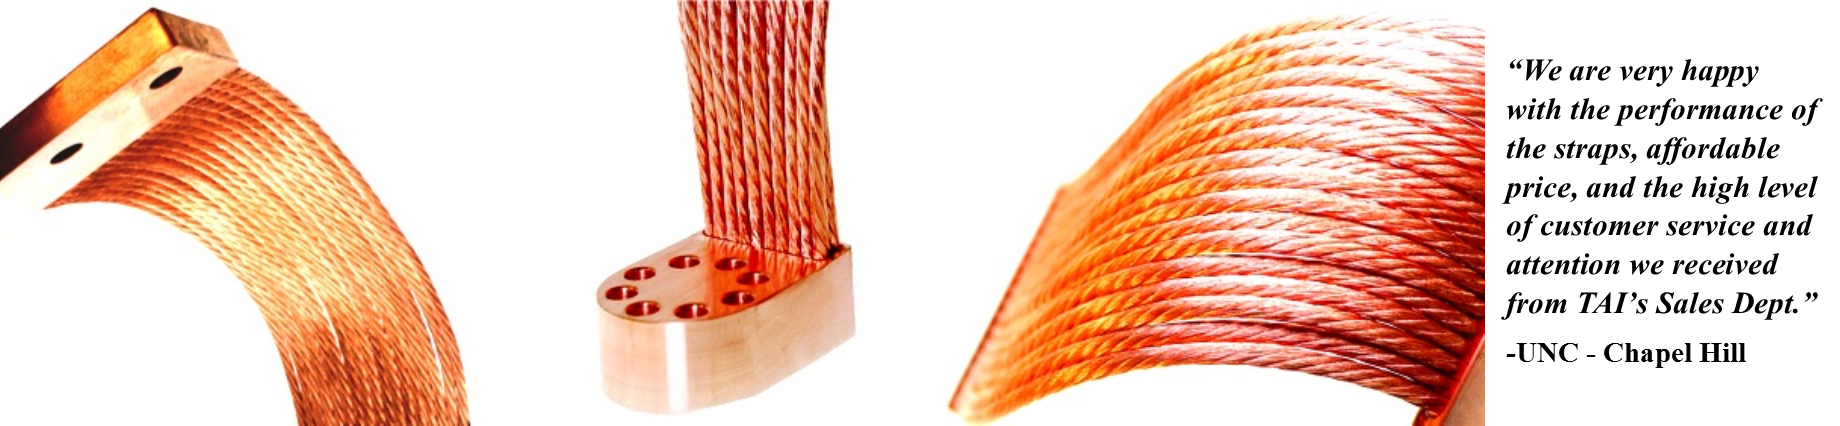 Flexible Thermal Links - High Conductance Copper Thermal Straps